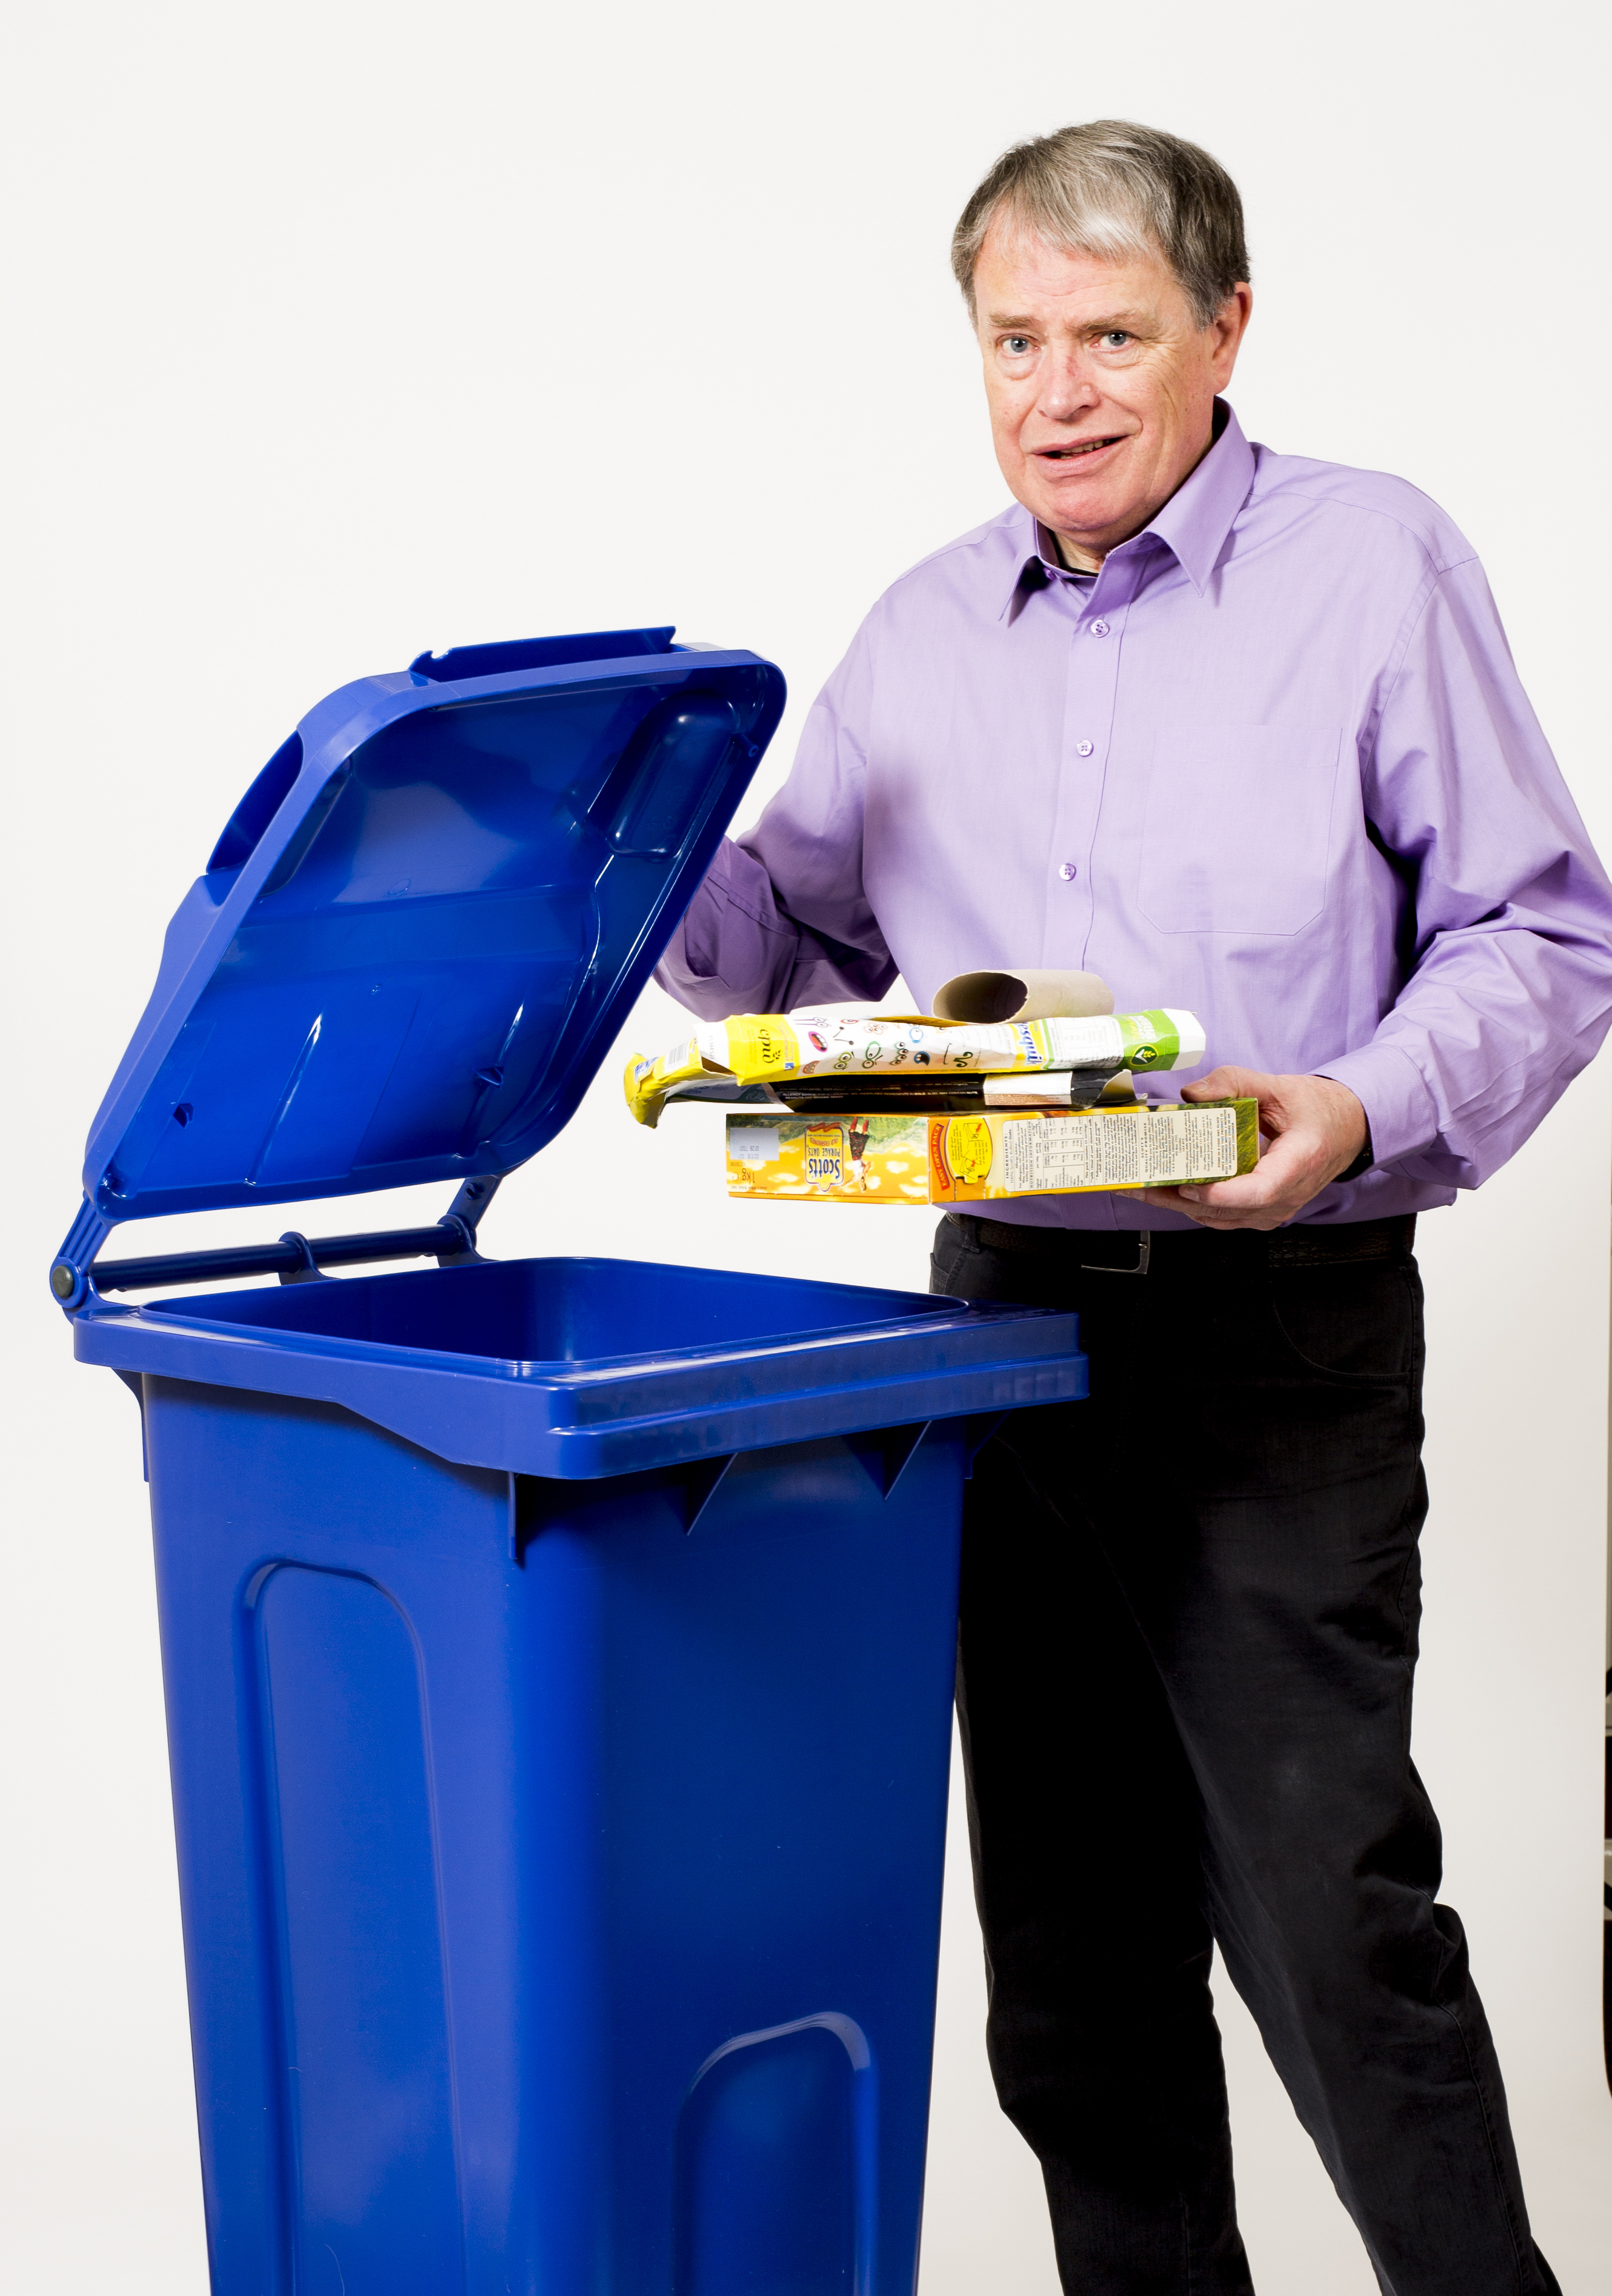 Recycling collections in Pendle are changing!